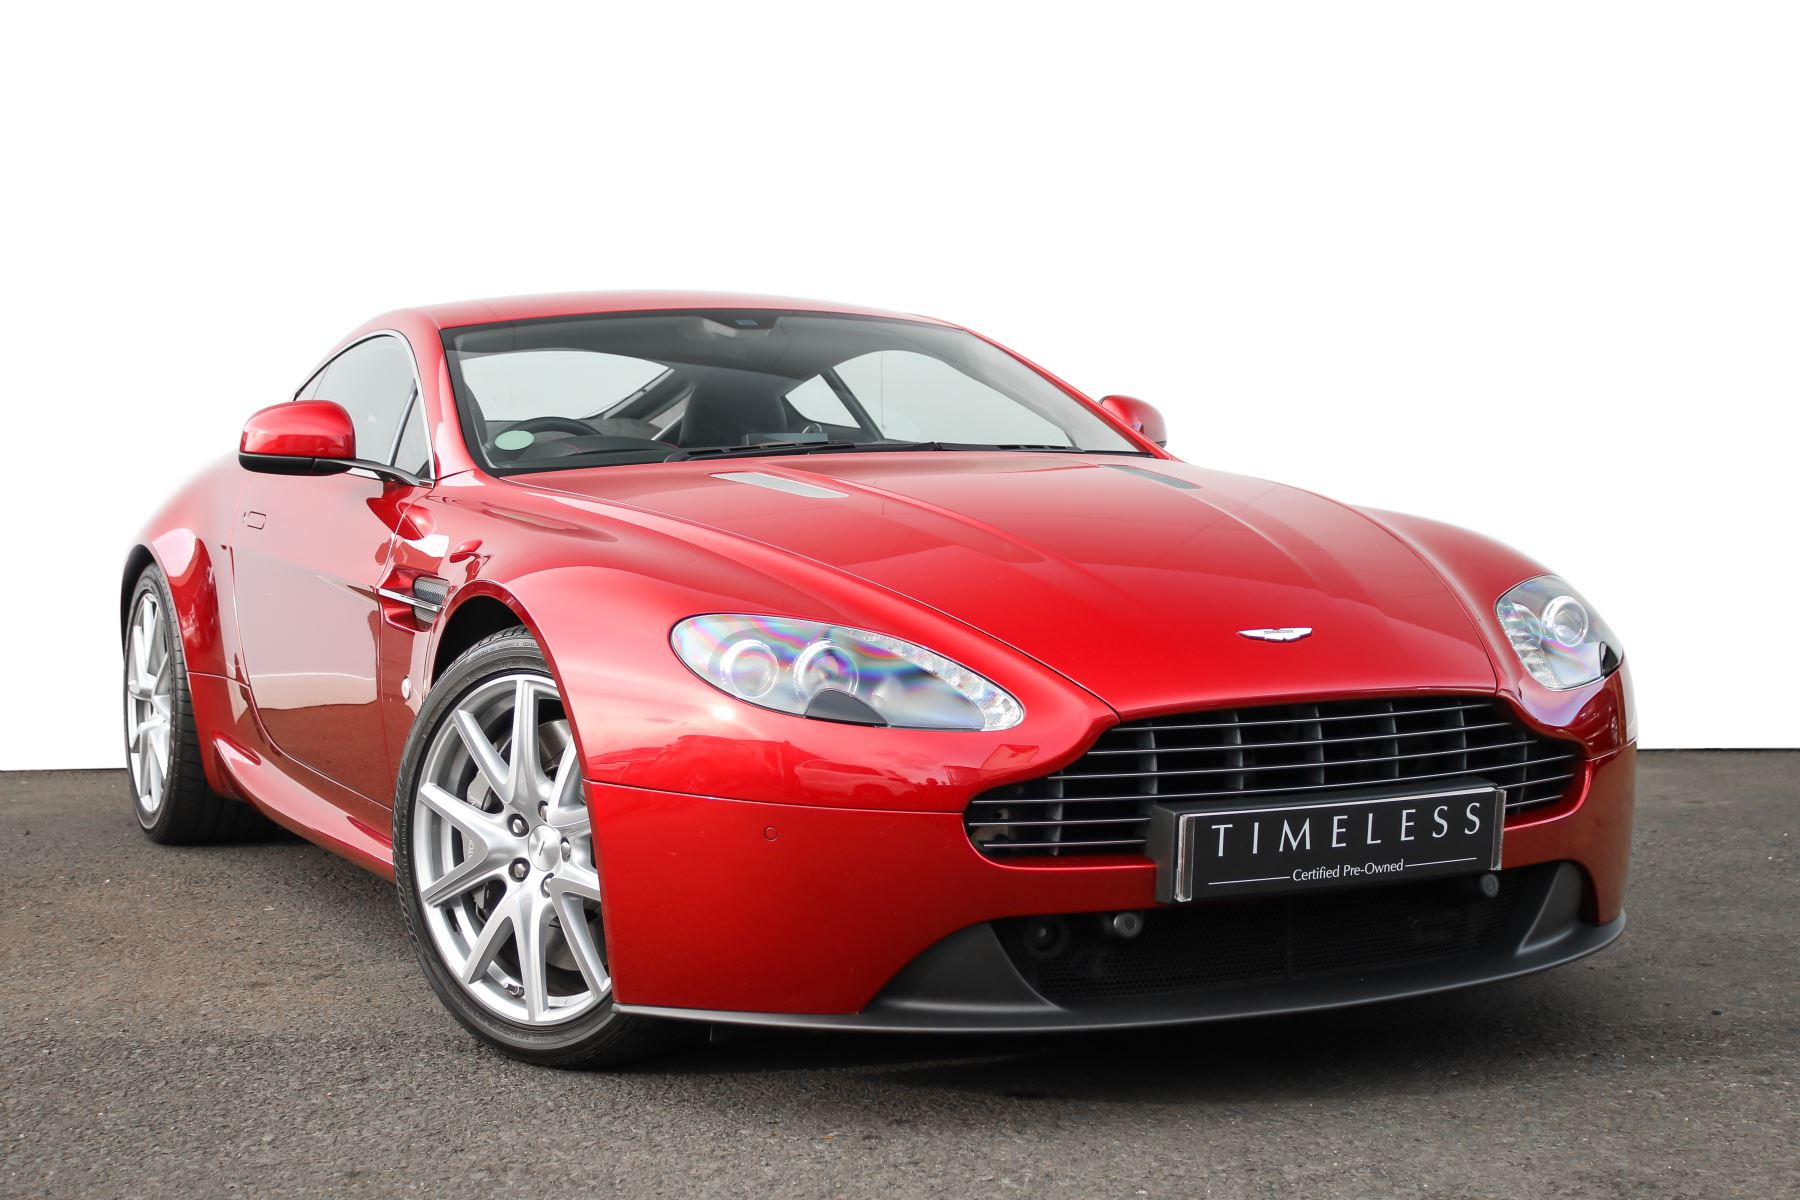 Aston Martin V8 Vantage 2dr [420] 4.7 3 door Coupe (2015)